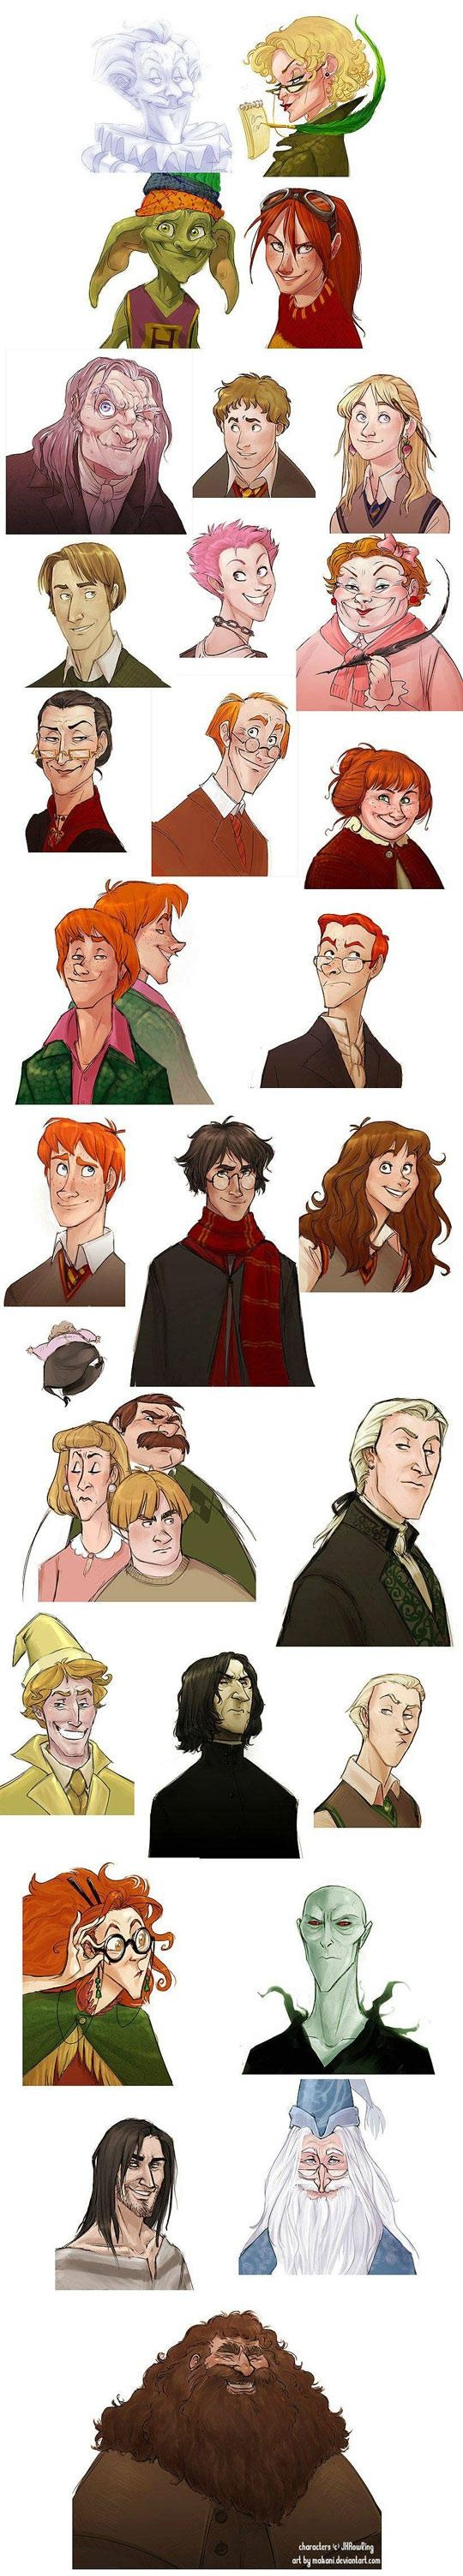 What JK Rowling described each character as... the movies *sort of* messed them up a lot....